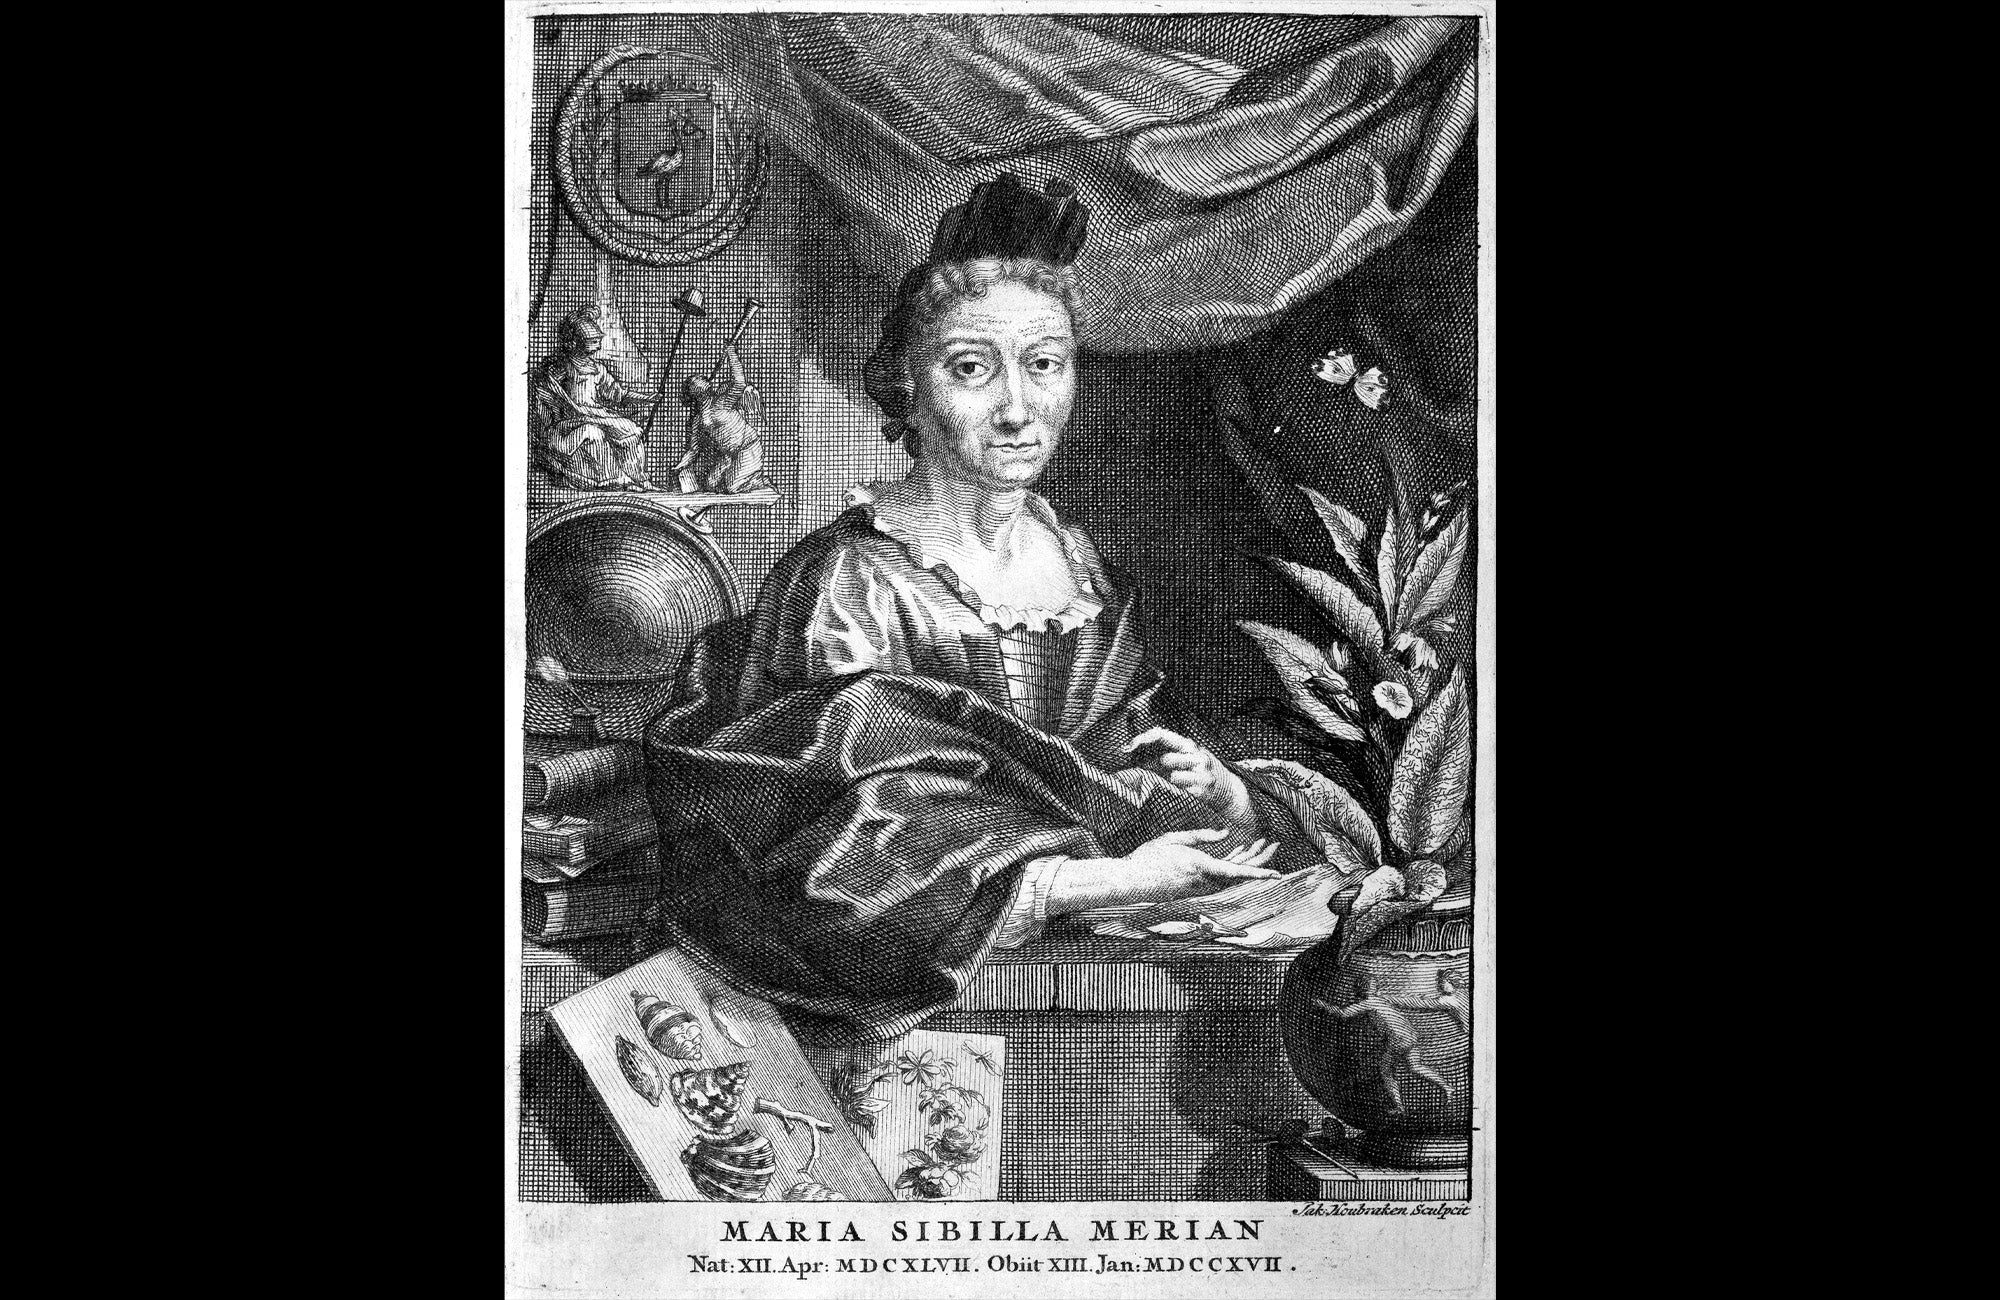 Maria Sibylla Merian Portrait from later in life